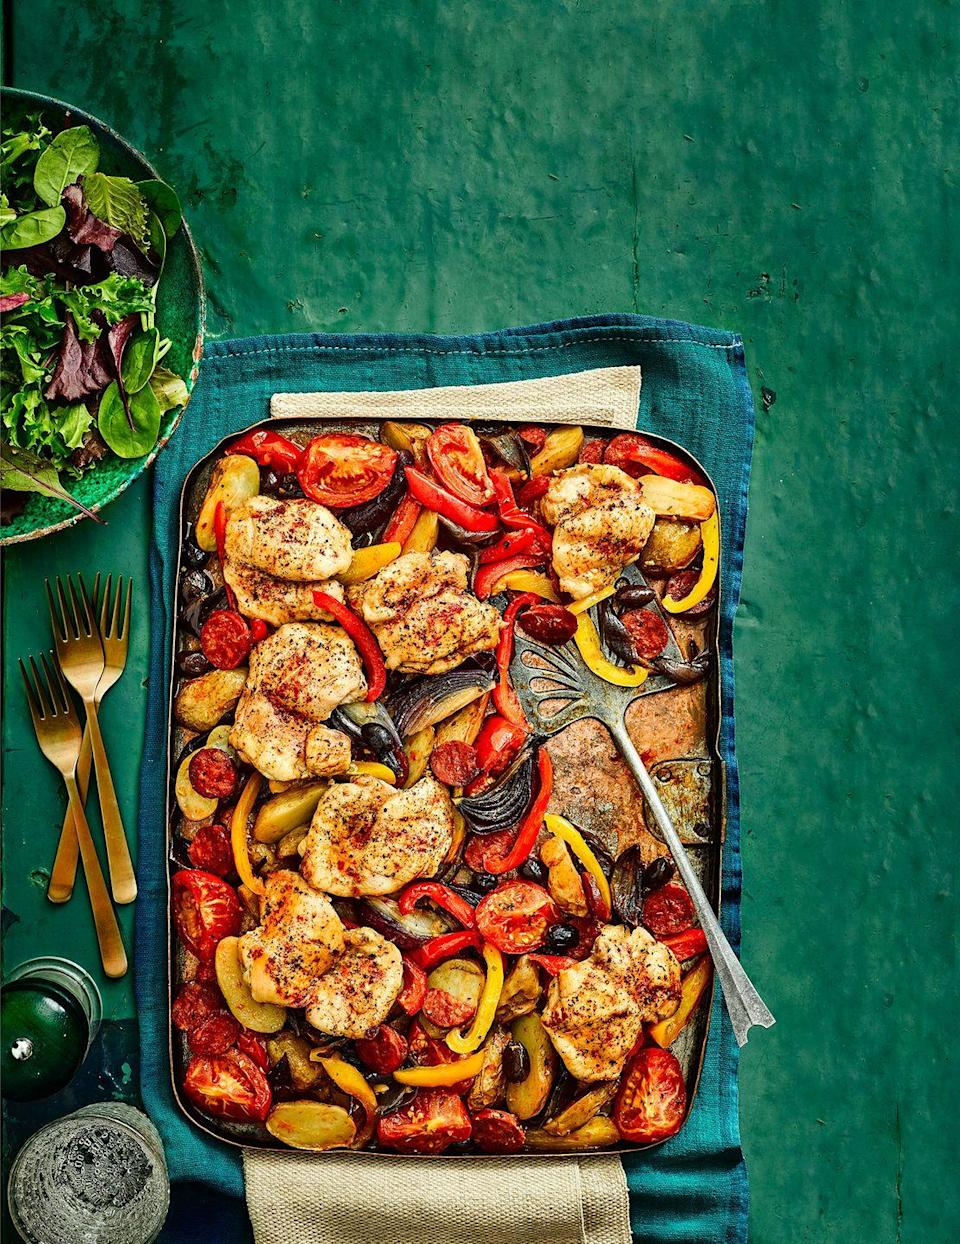 """<p>A chicken traybake full of sunshine flavours. If you'd prefer not to use sherry, substitute with chicken stock instead.</p><p><strong>Recipe: <a href=""""https://www.goodhousekeeping.com/uk/food/recipes/a24427190/chicken-traybake/"""" rel=""""nofollow noopener"""" target=""""_blank"""" data-ylk=""""slk:Spanish chicken tray bake"""" class=""""link rapid-noclick-resp"""">Spanish chicken tray bake</a></strong></p>"""